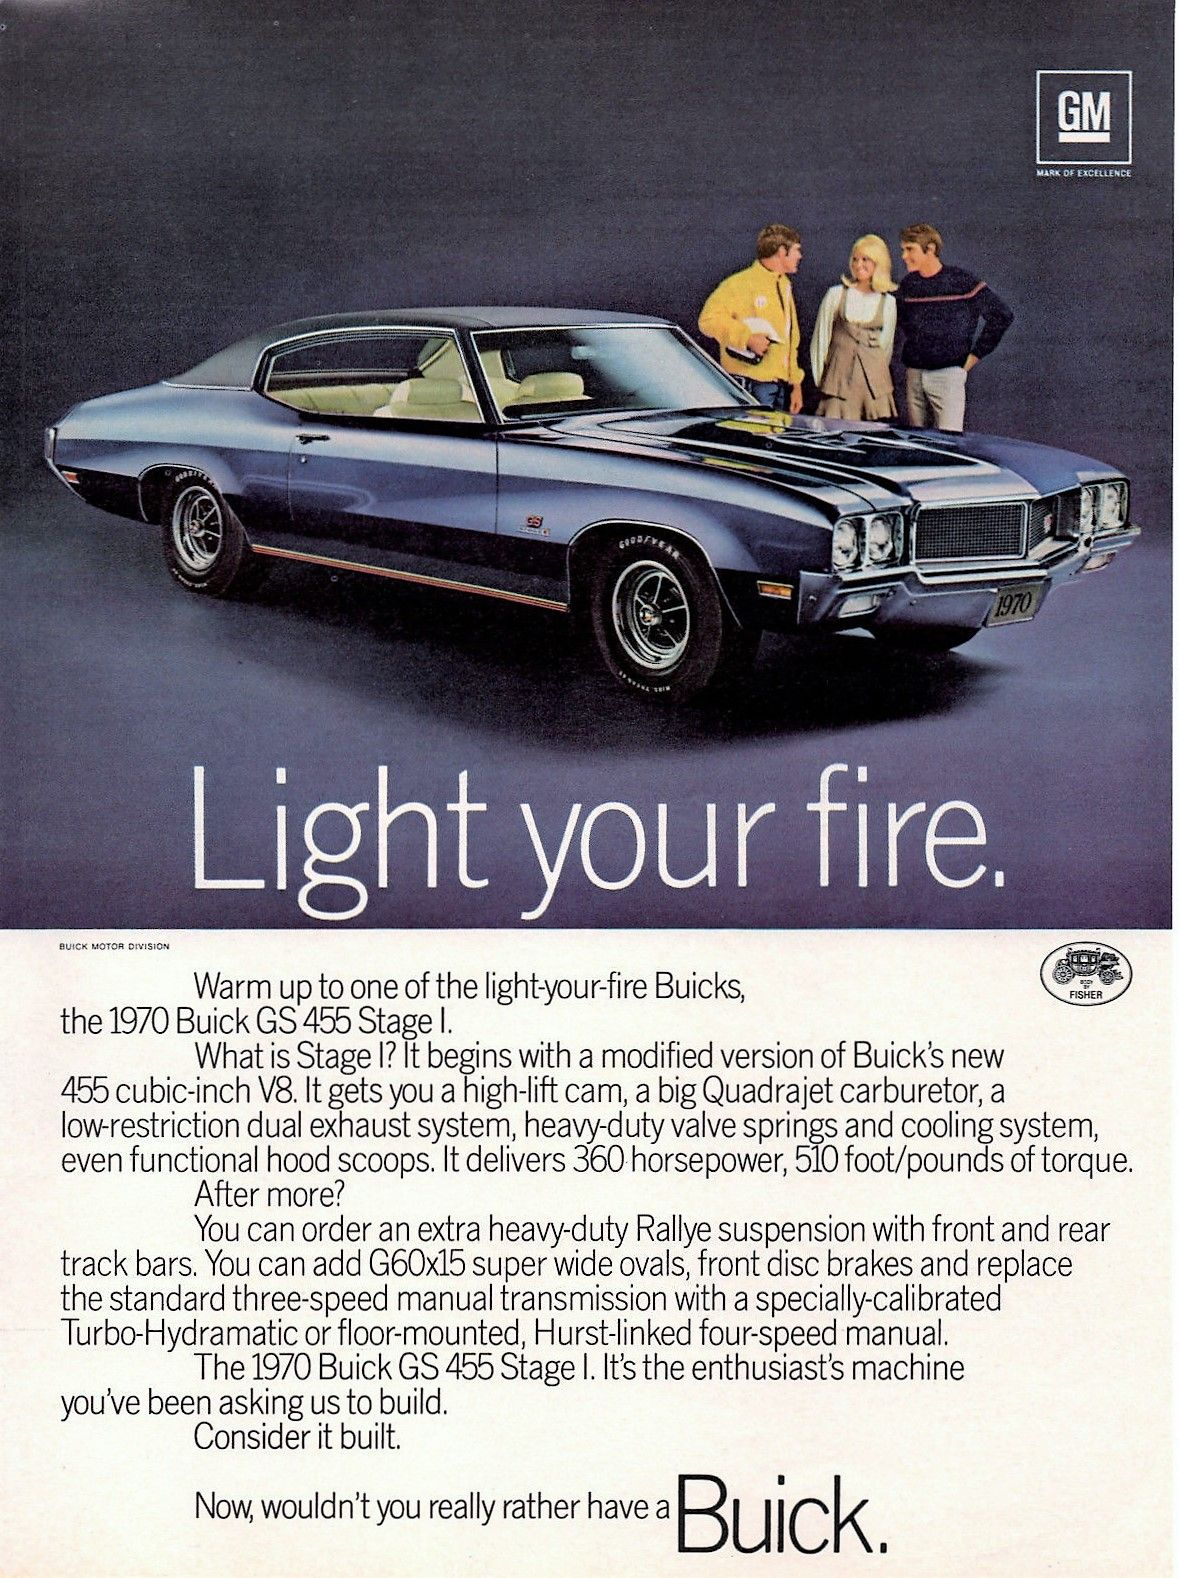 1970 buick gs 455 stage 1 americaines pinterest voiture. Black Bedroom Furniture Sets. Home Design Ideas